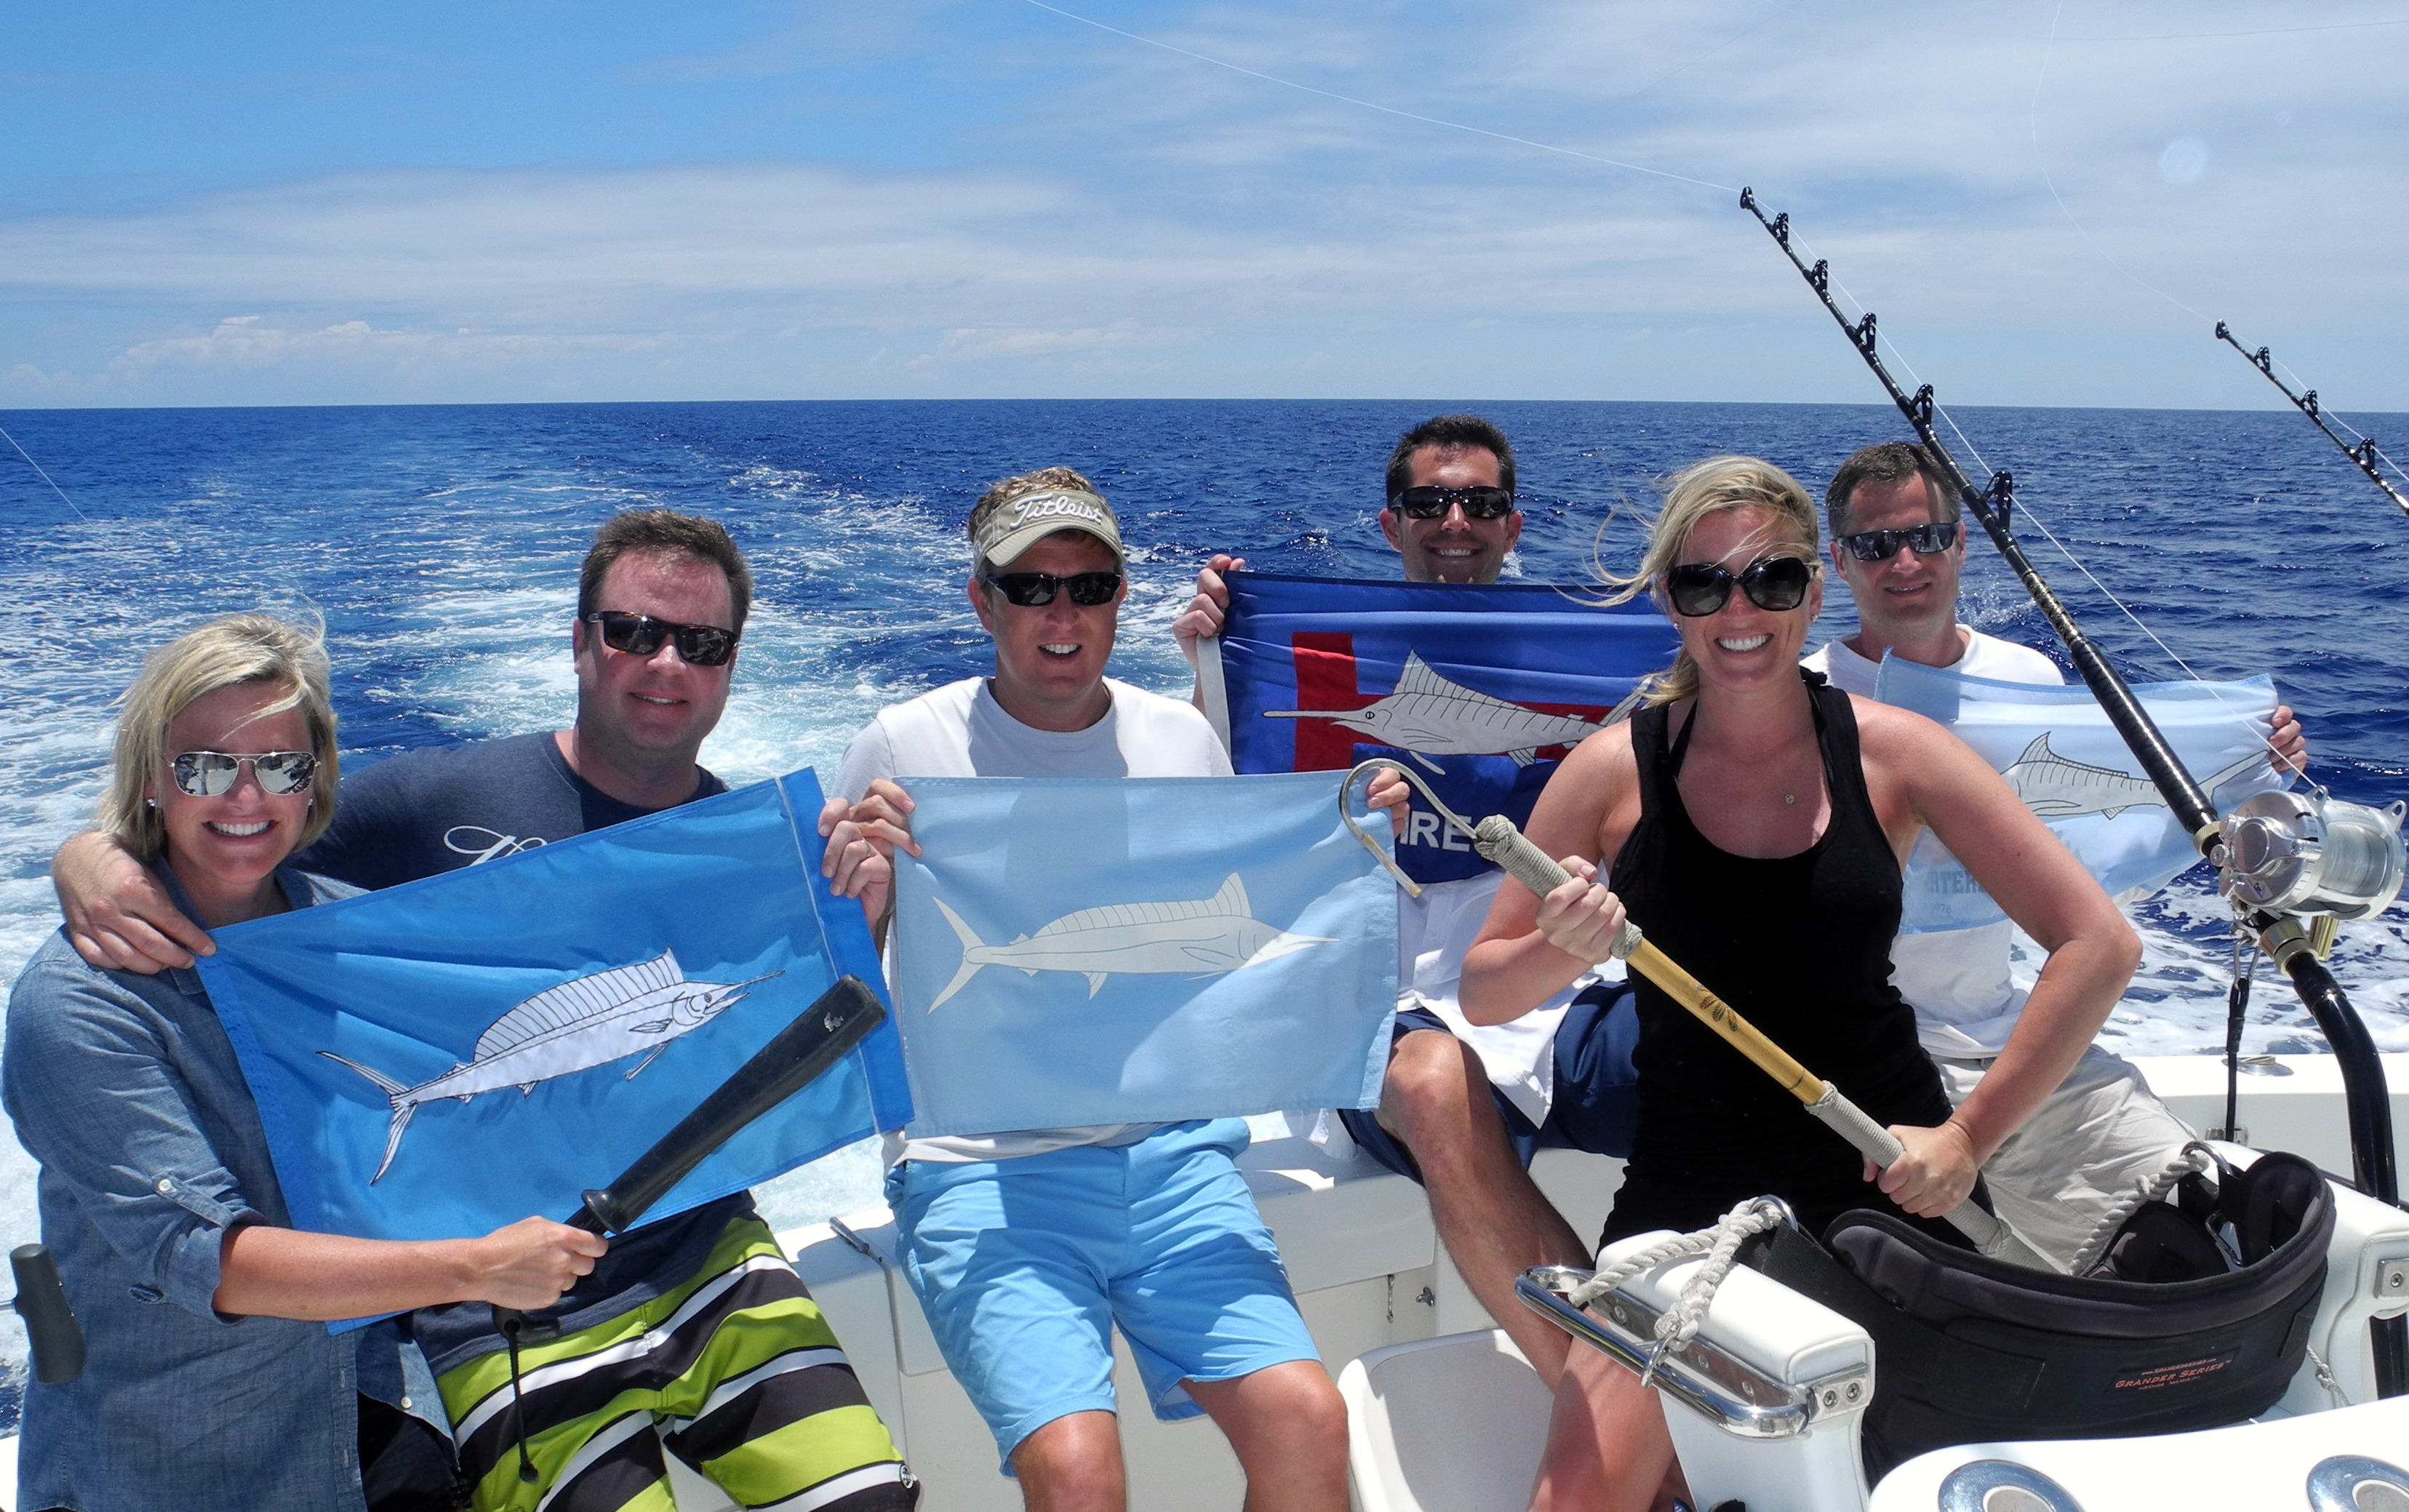 Not a bad day of fishing in kona hawaii kona fishing for Kona fishing charters